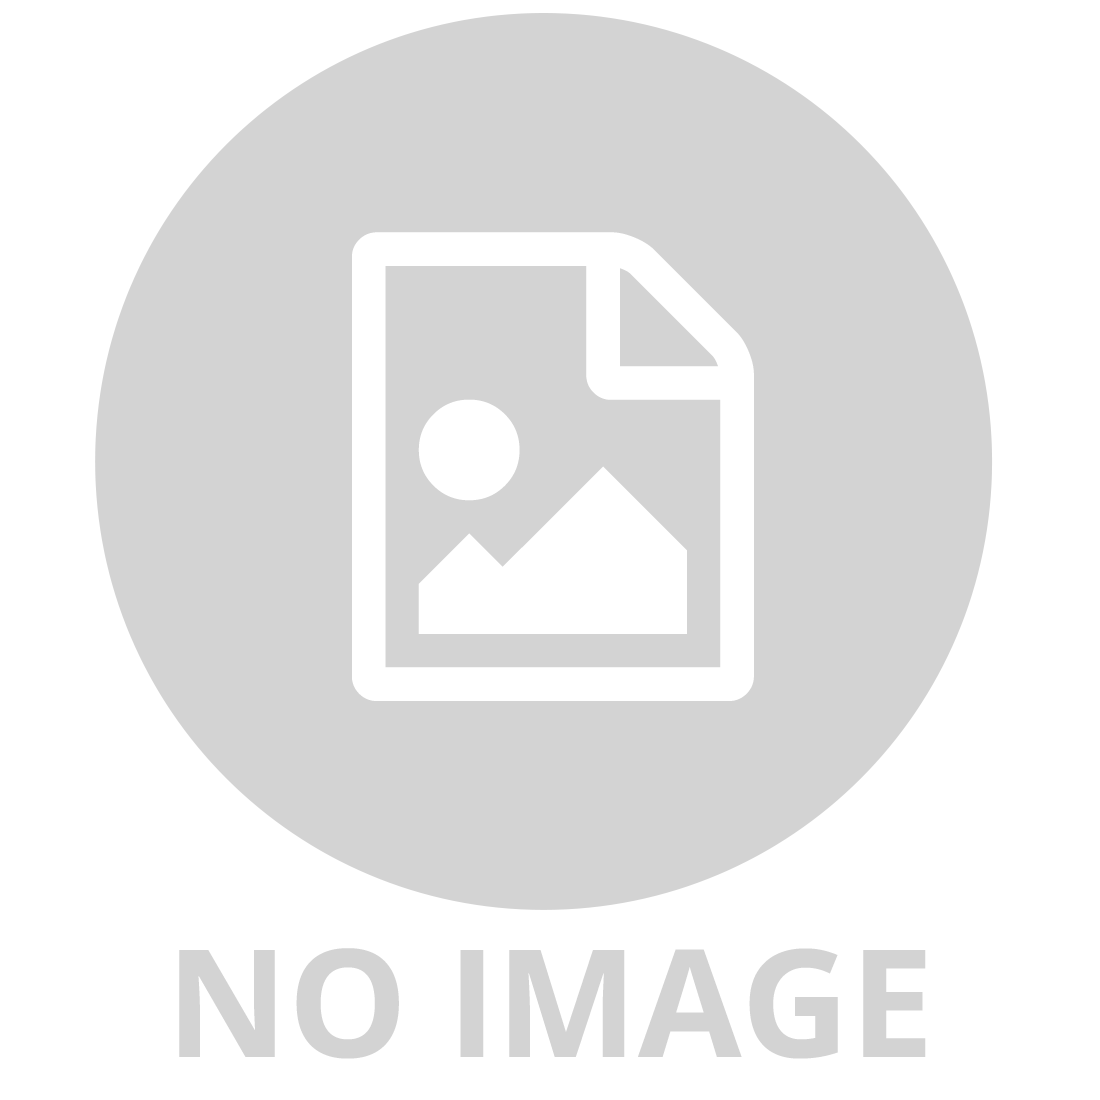 TAMIYA TS 79 SEMI GLOSS CLEAR SPRAY PAINT FOR PLASTICS